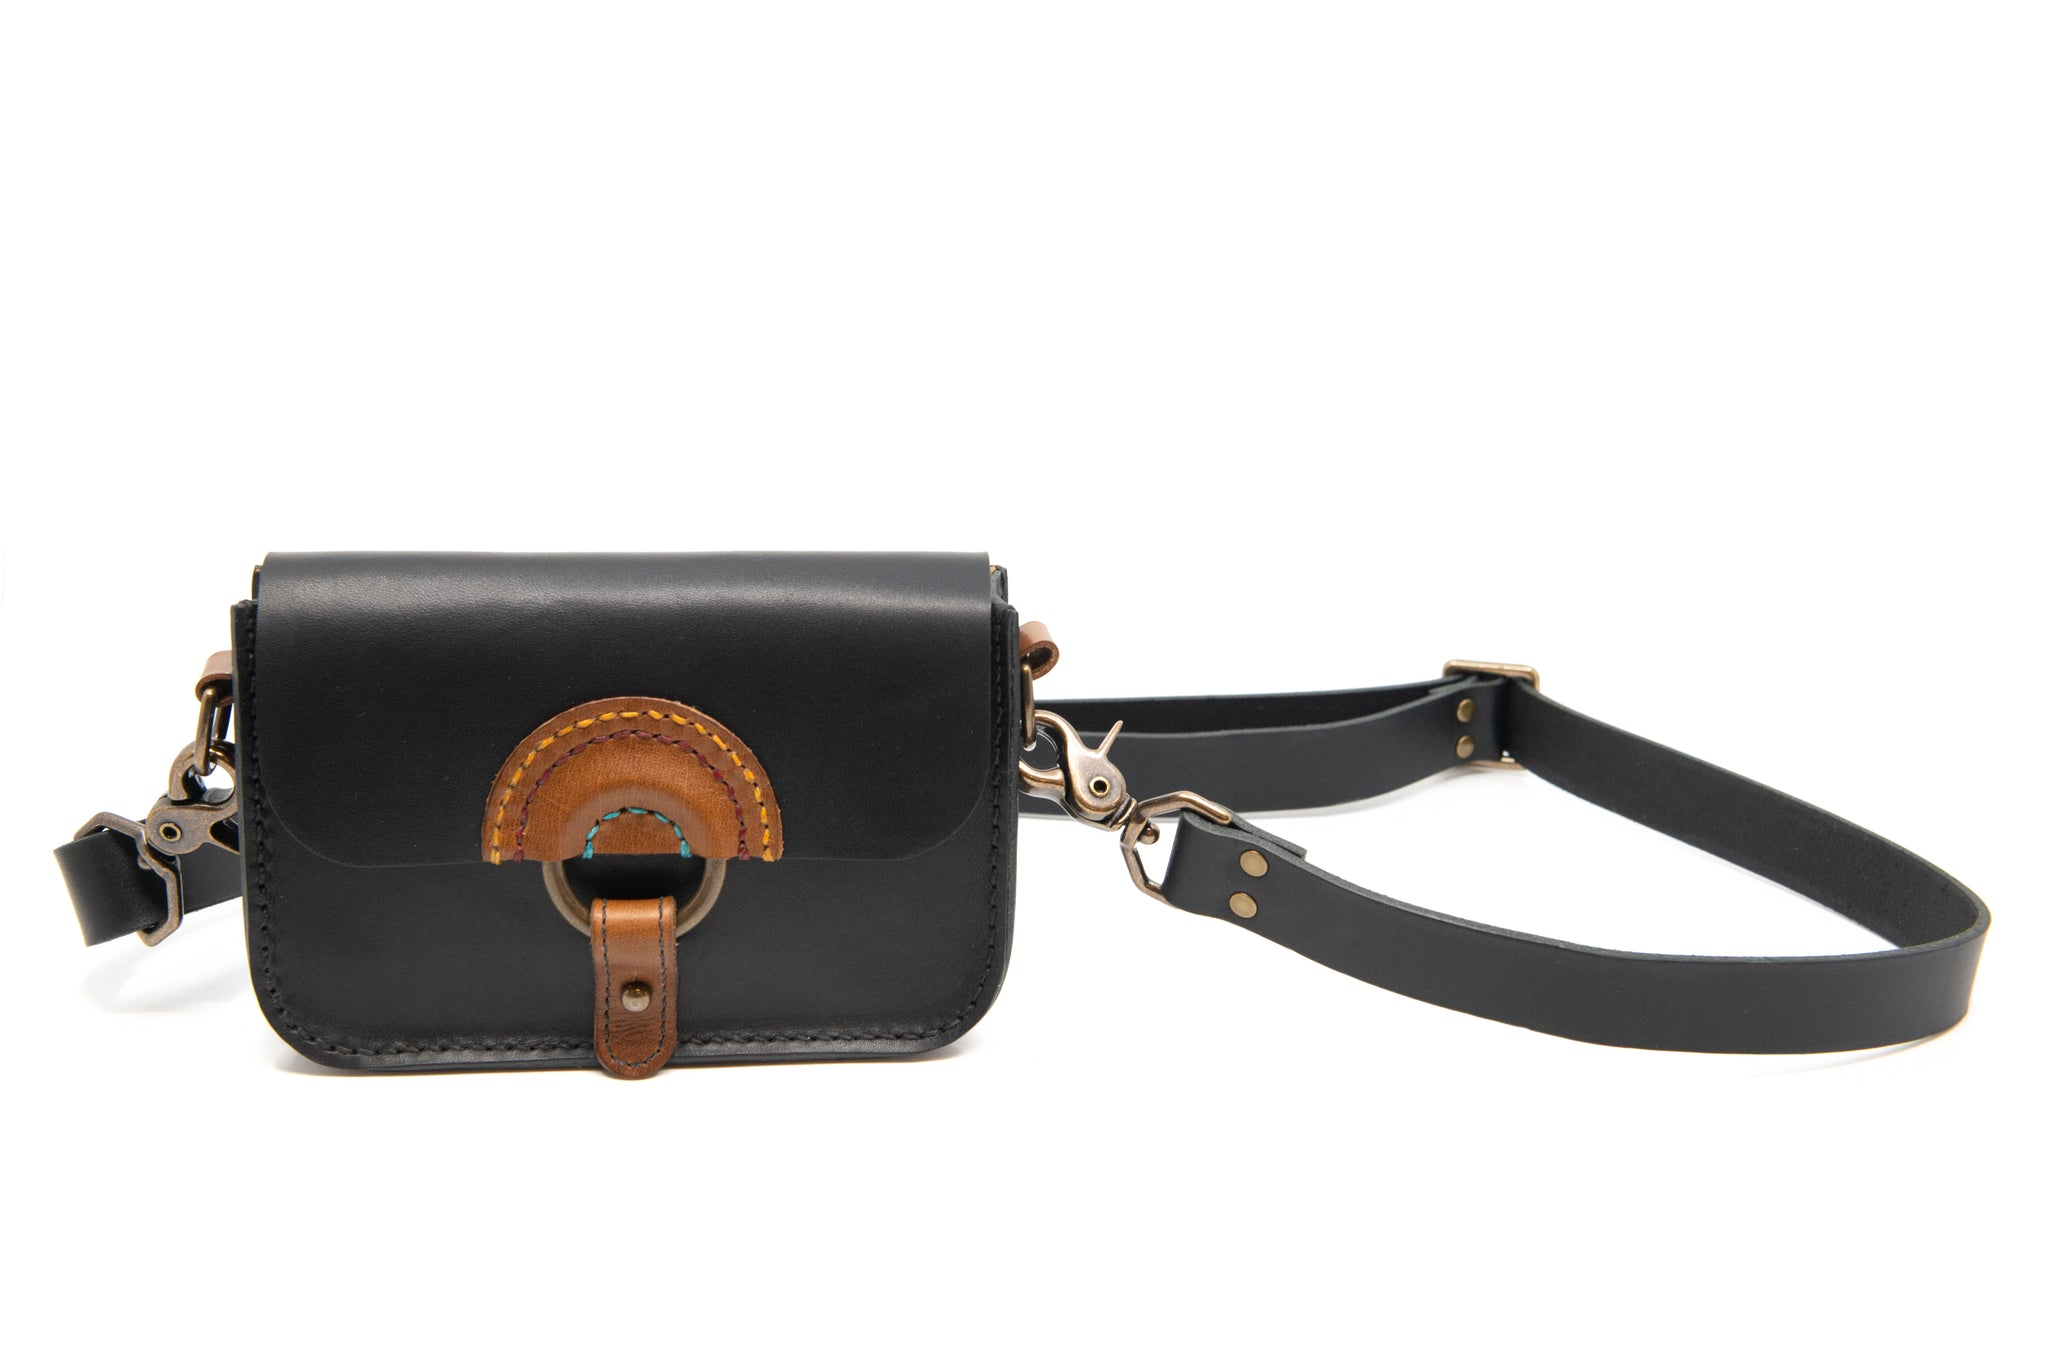 Solnedgang Dual Belt Bag and Crossbody - Black Rainbow and Brass